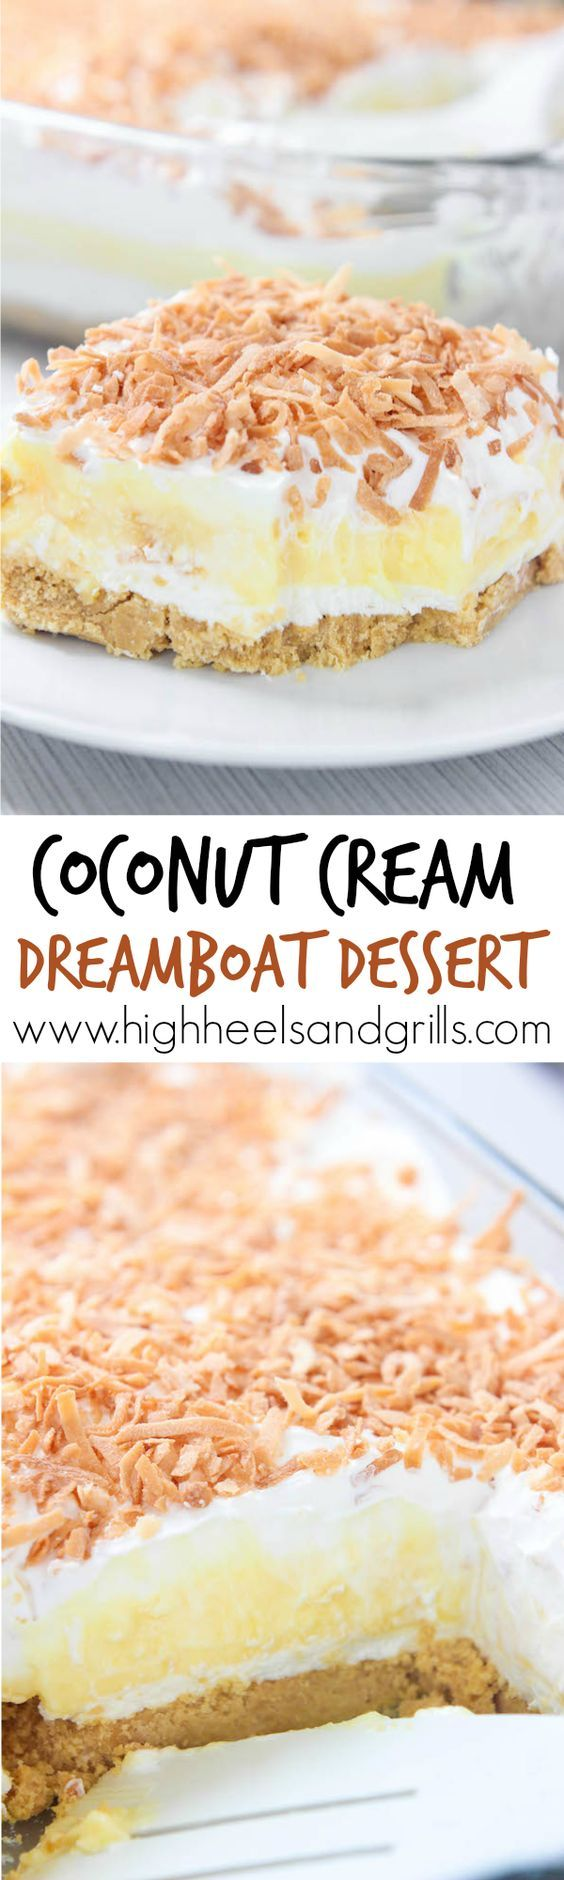 Coconut Cream Dreamboat Dessert - My favorite no-bake dessert to make for parties and get togethers. Great for feeding a crowd.